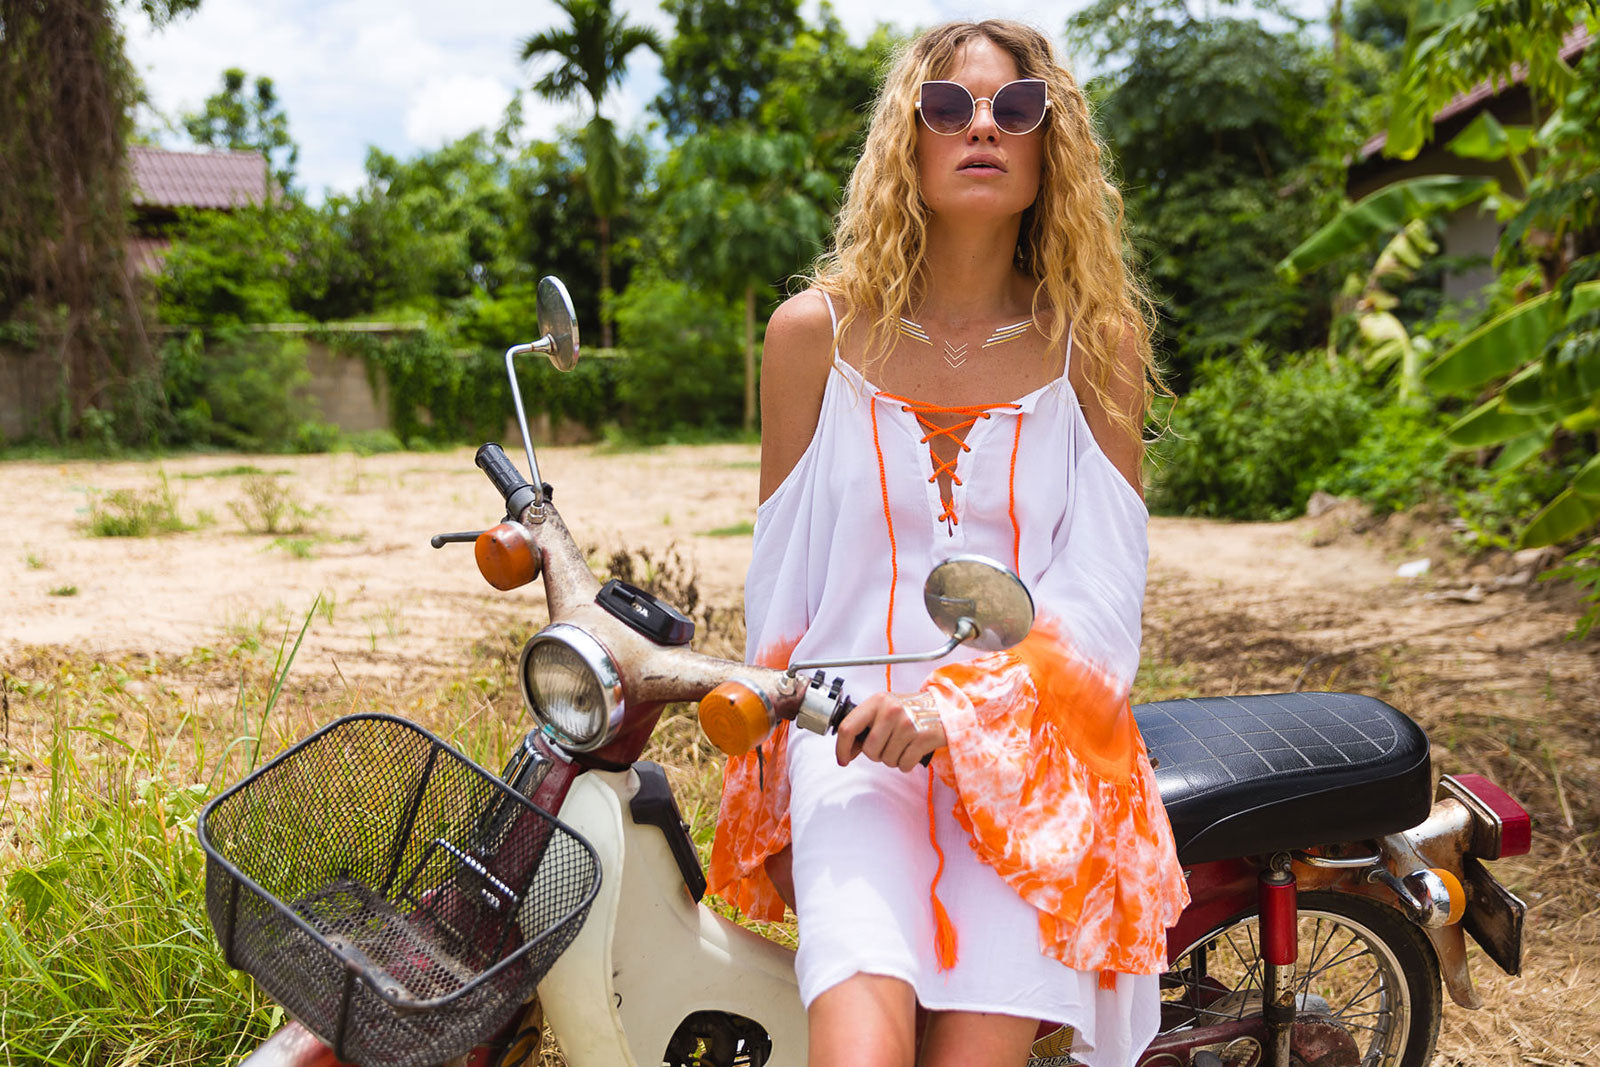 Boho Chic clothing and fashion for the modern woman.